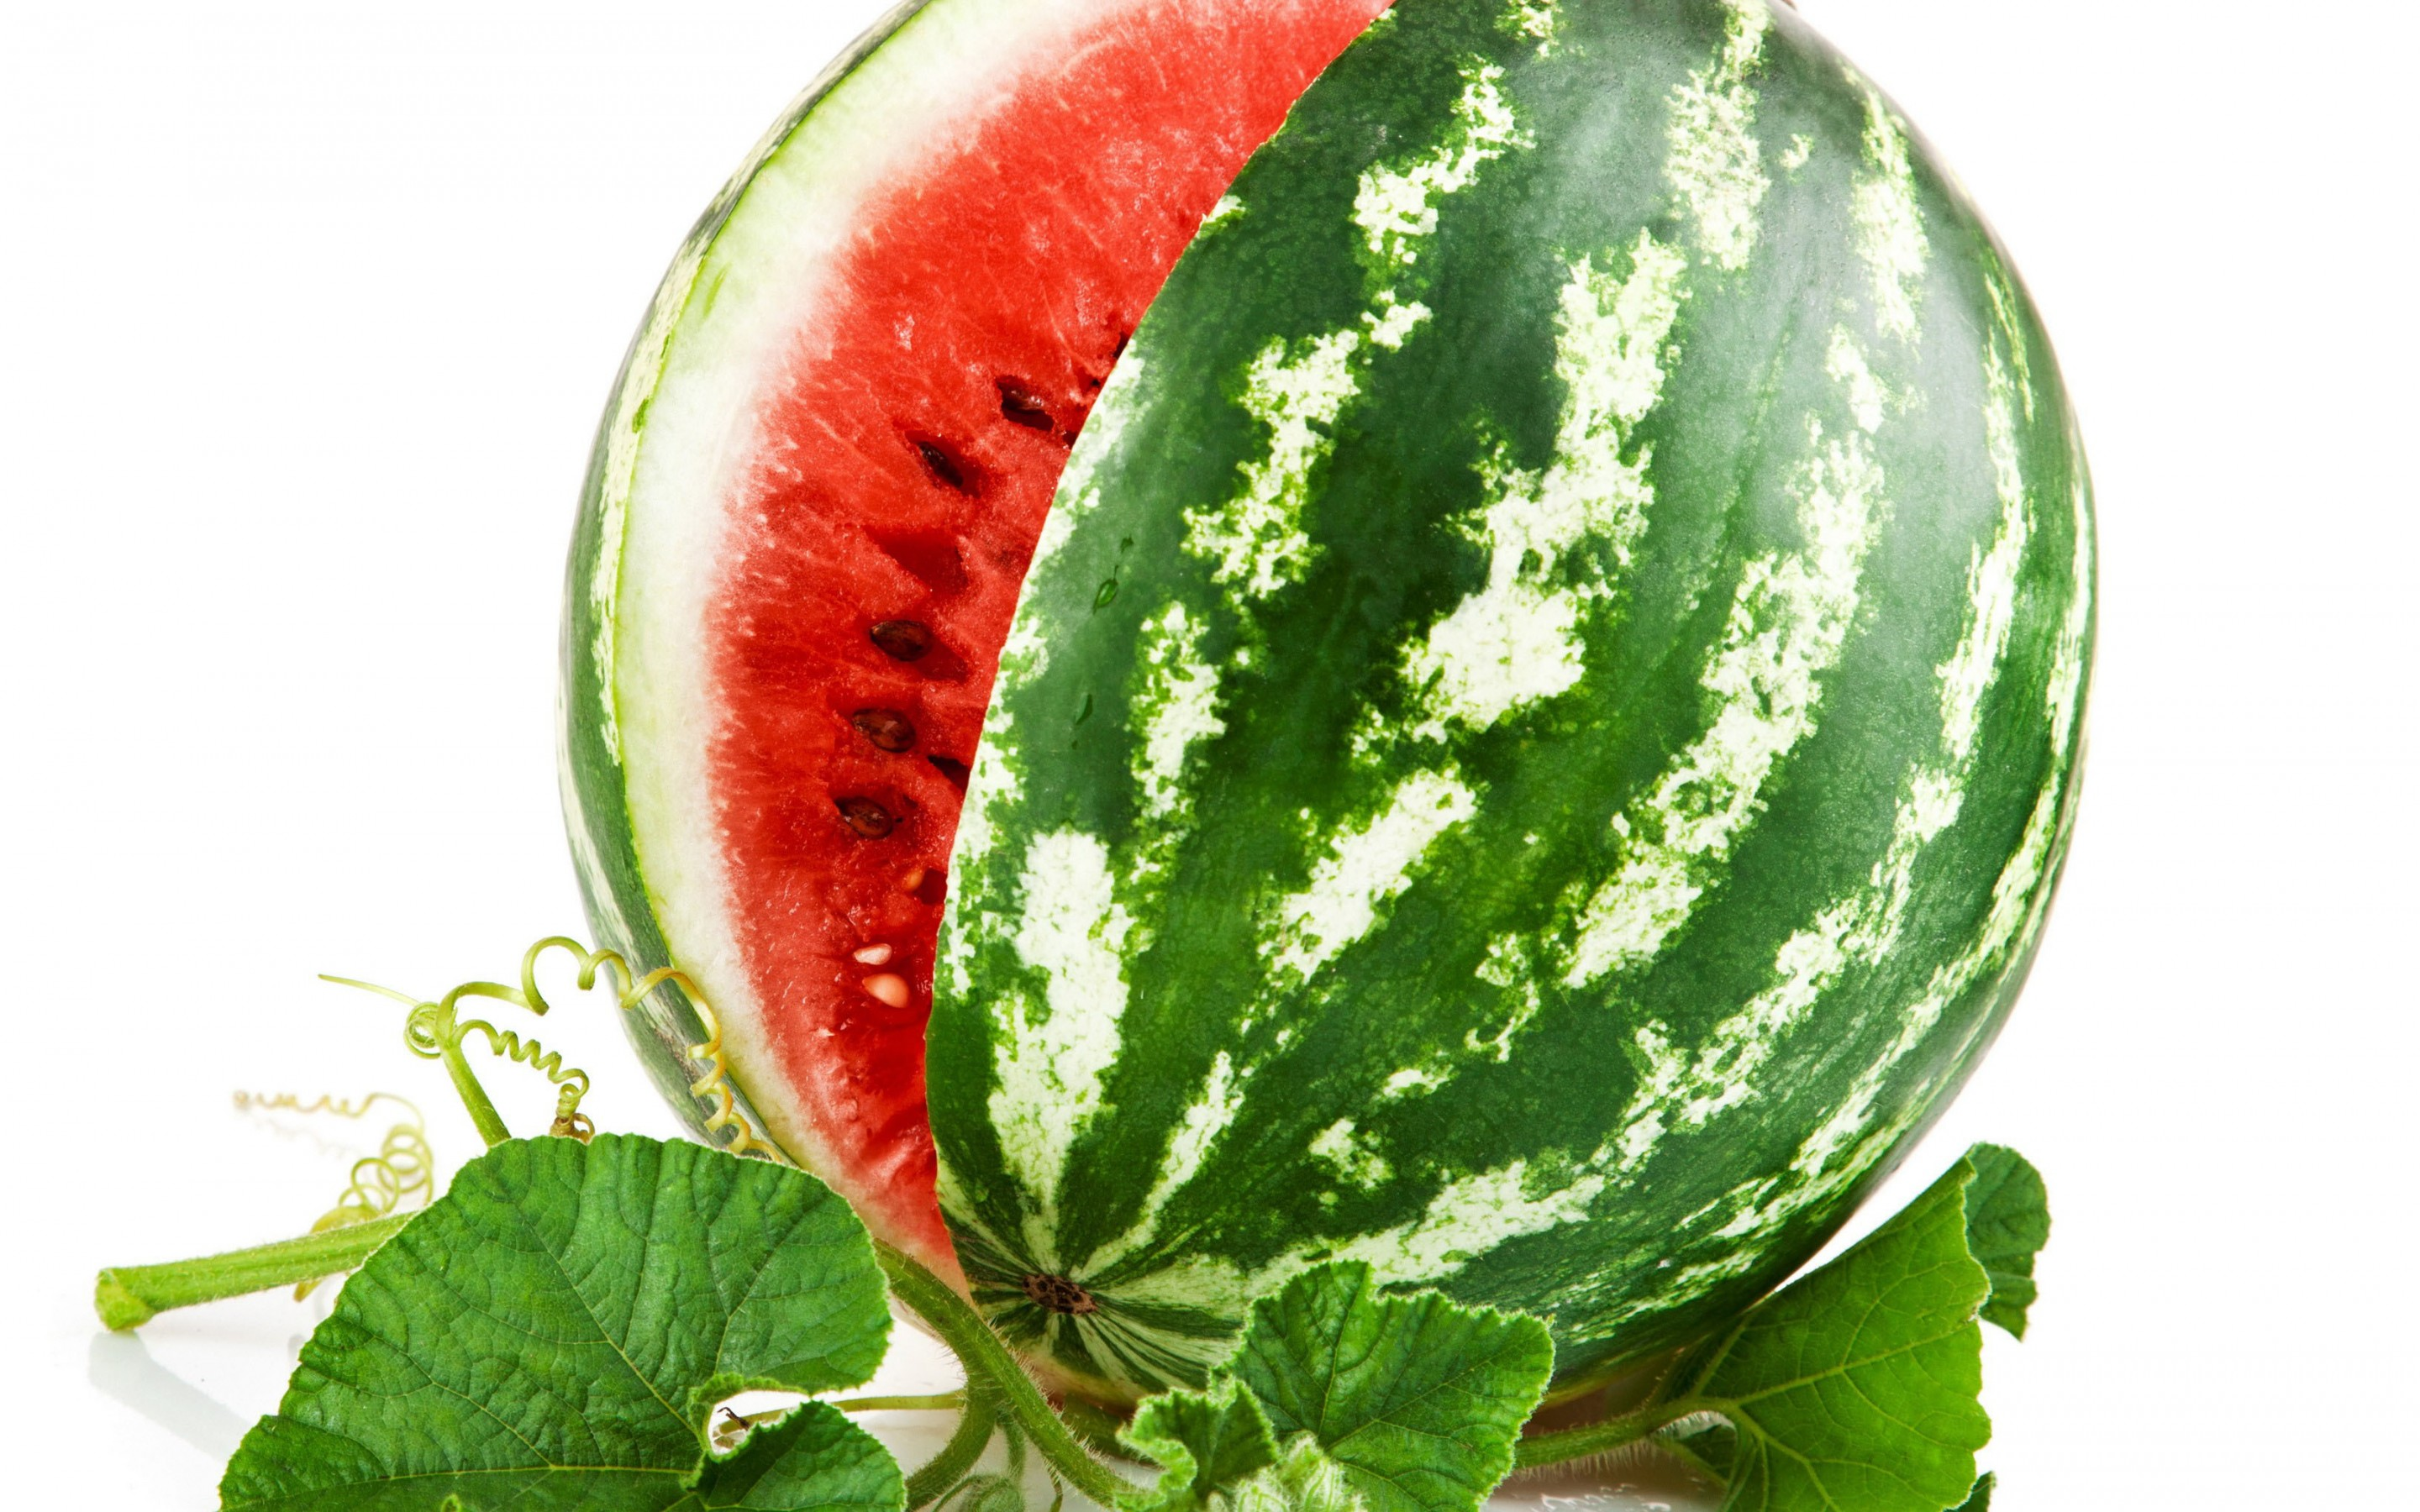 Watermelon; Watermelon; Watermelon; Watermelon Wallpapers; Watermelon Wallpapers; Watermelon Wallpapers